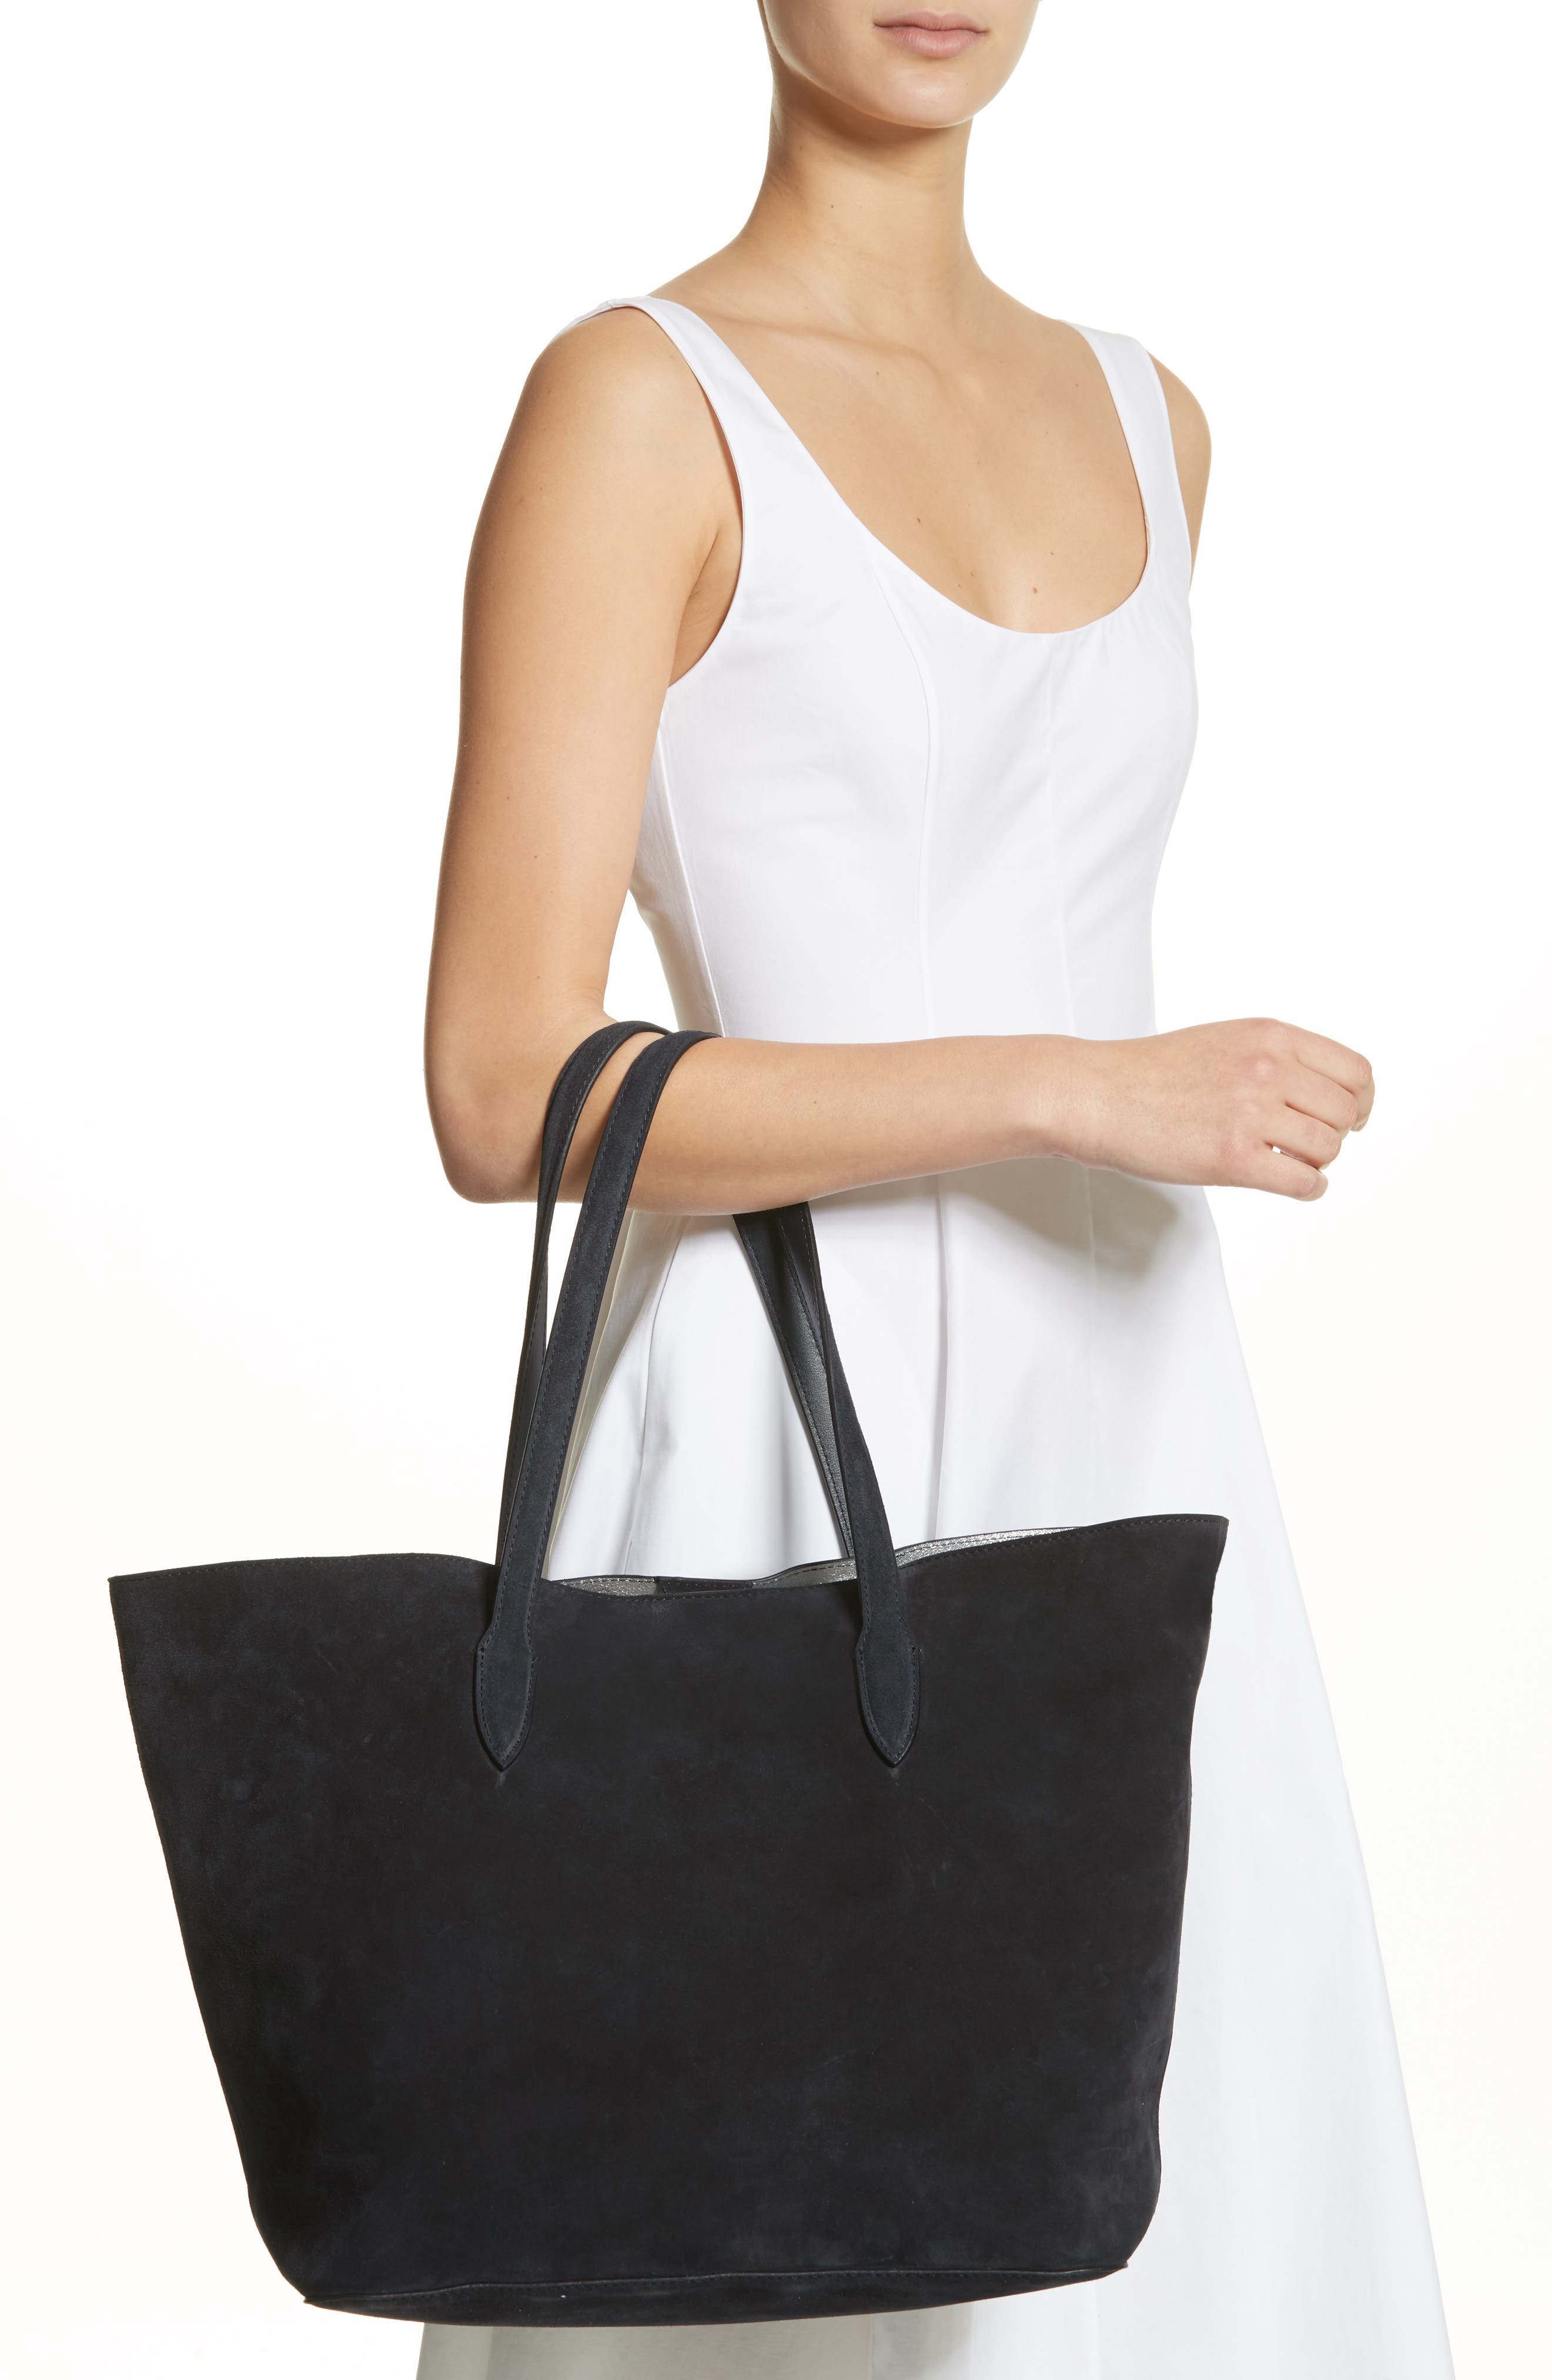 Jin Suede Tote,                             Alternate thumbnail 2, color,                             001